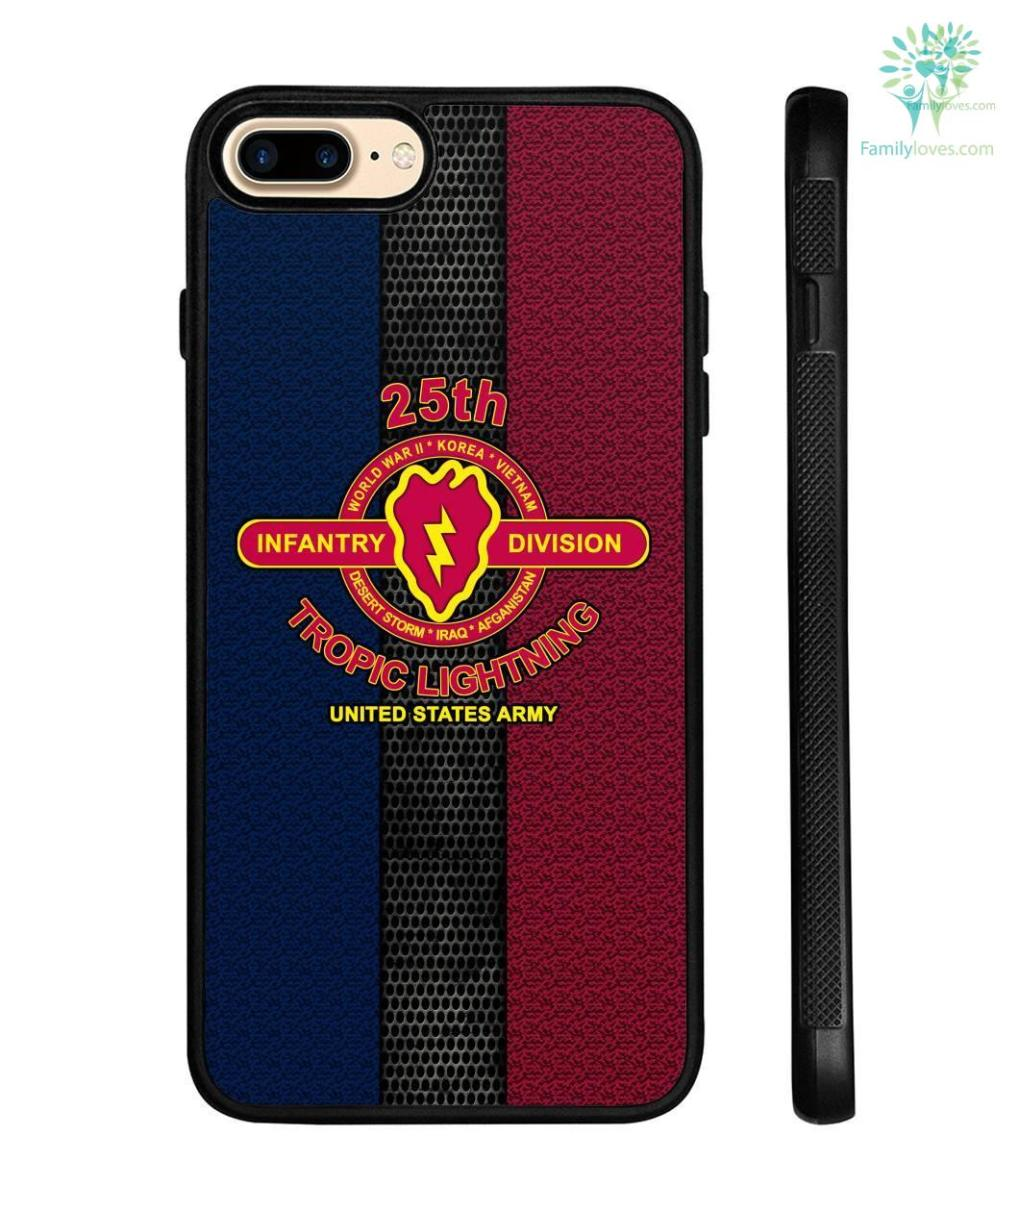 25th-infantry-division_e814faf7-0af5-812c-8828-39a6a7f96106 25th Infantry Division tropic lightning United States Army? iPhone cases  %tag